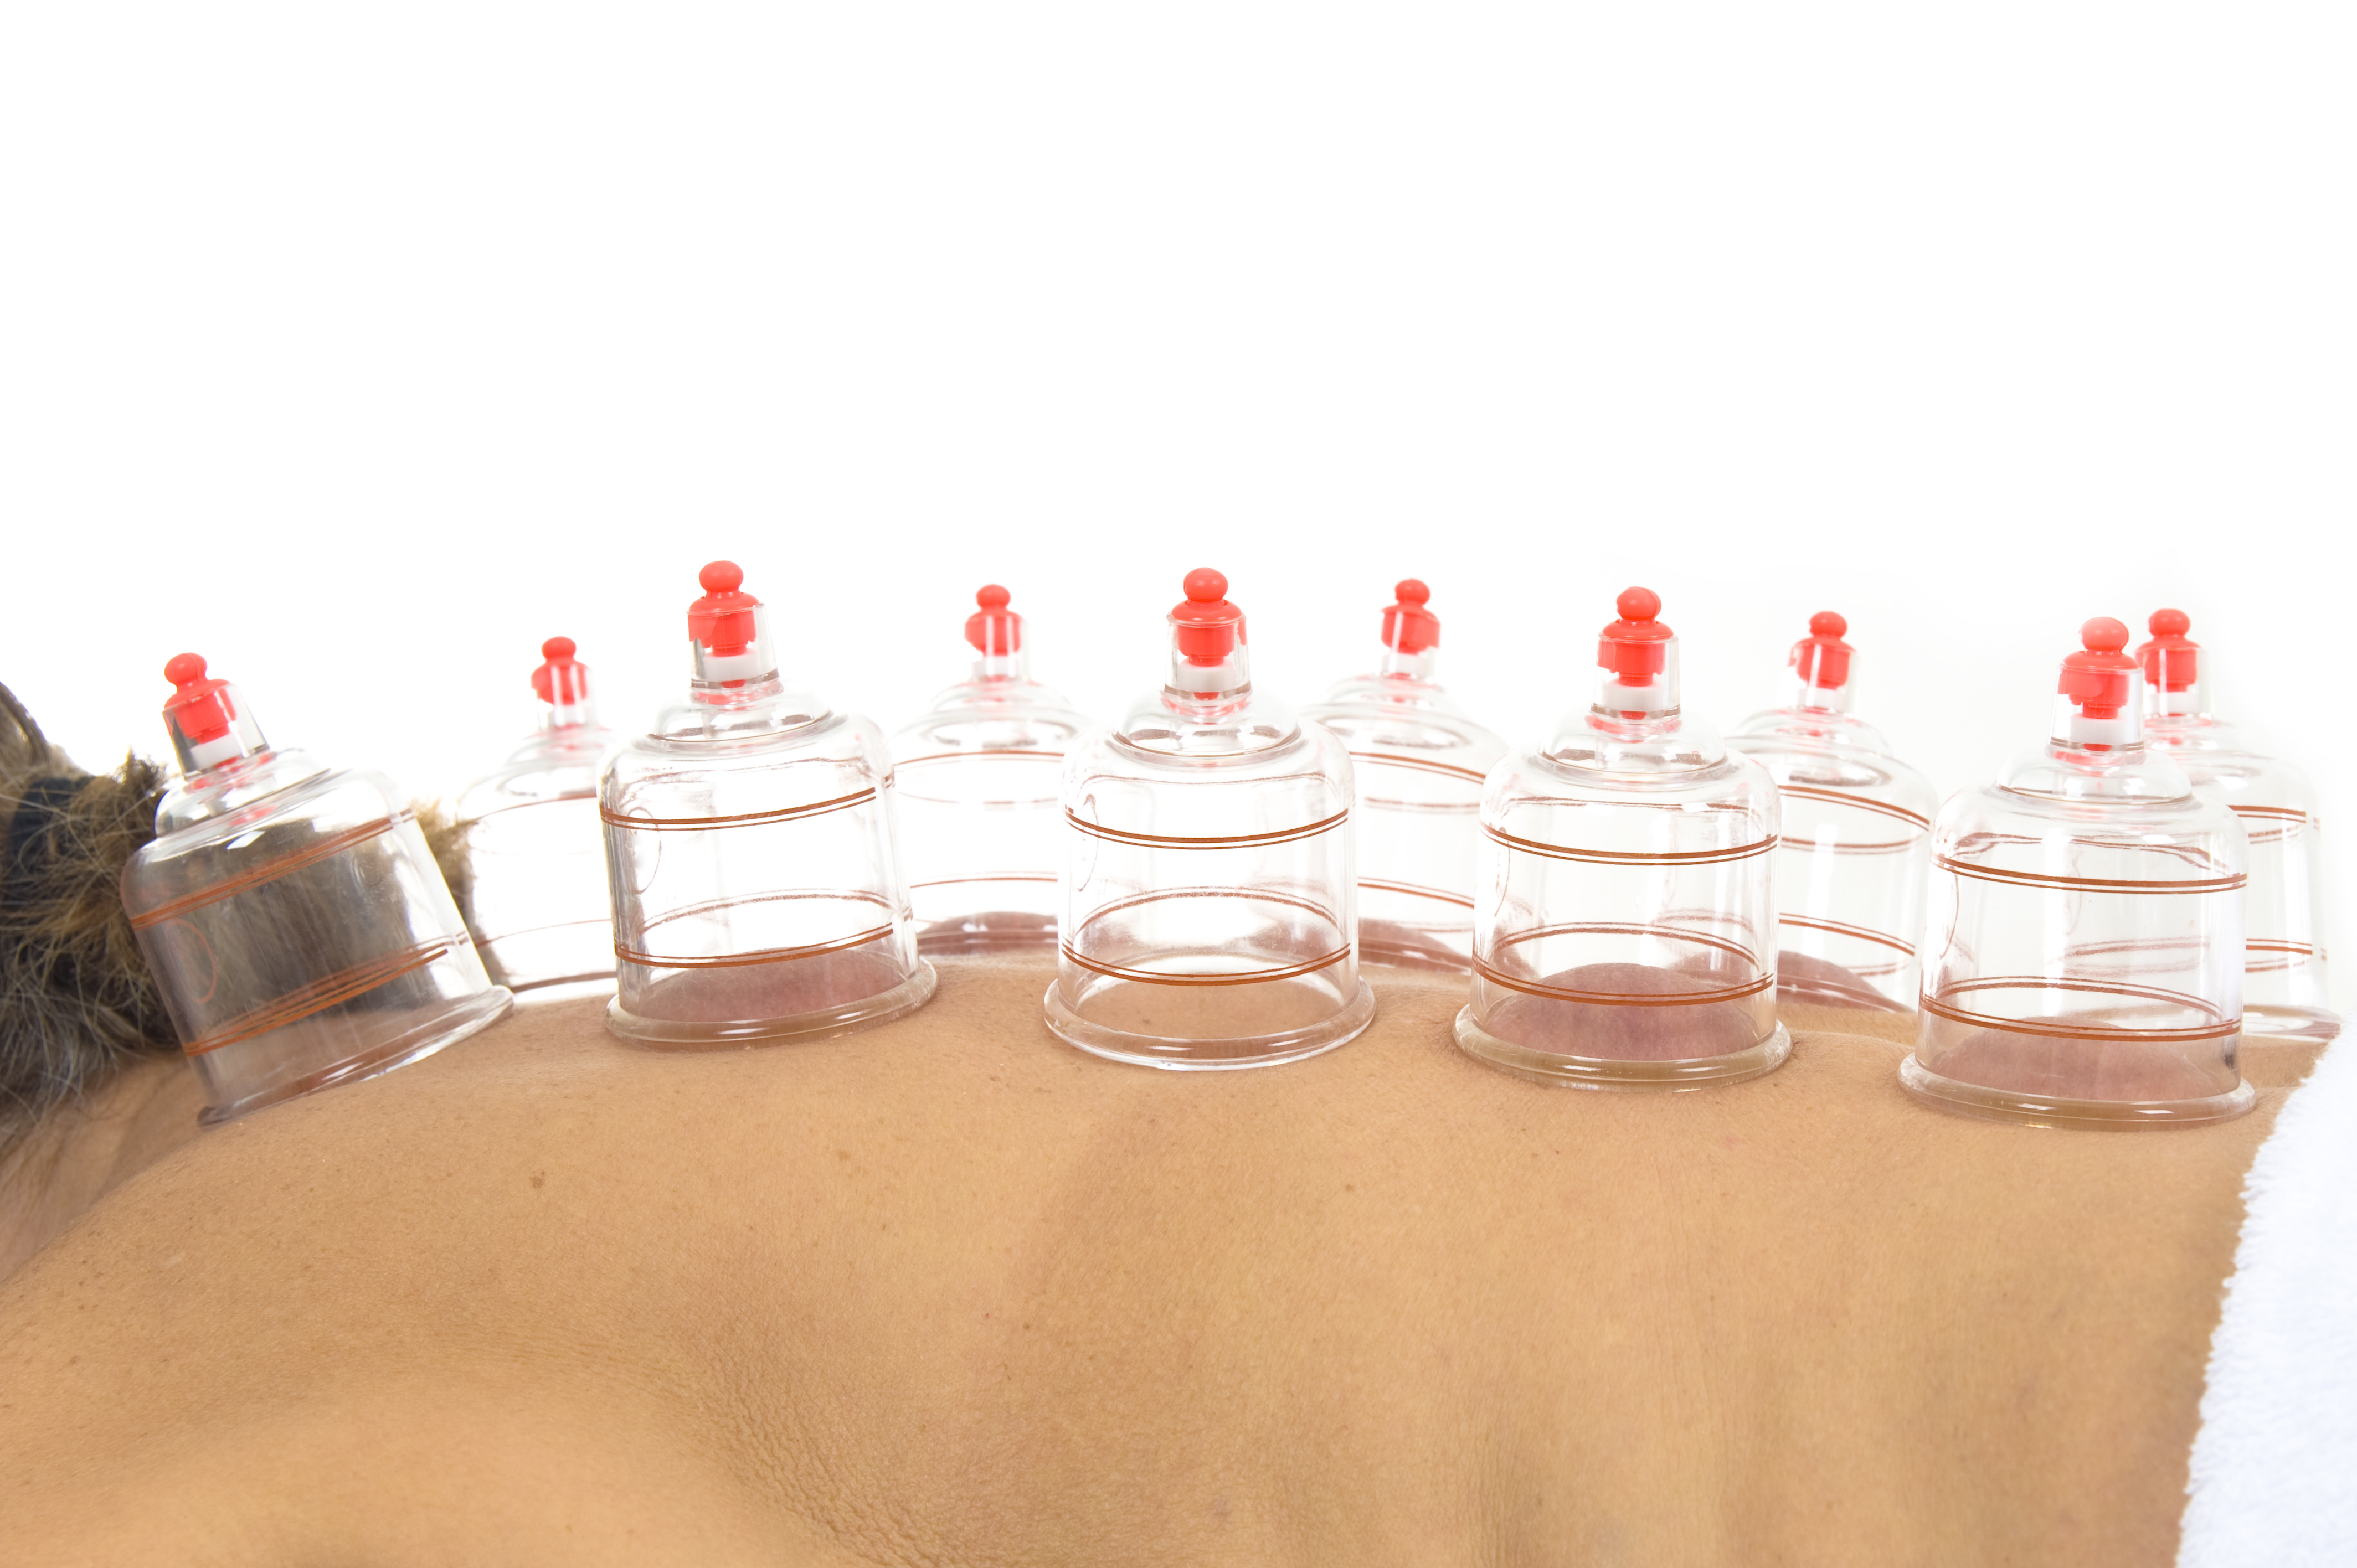 Cupping Can Relieve Pain and Ache